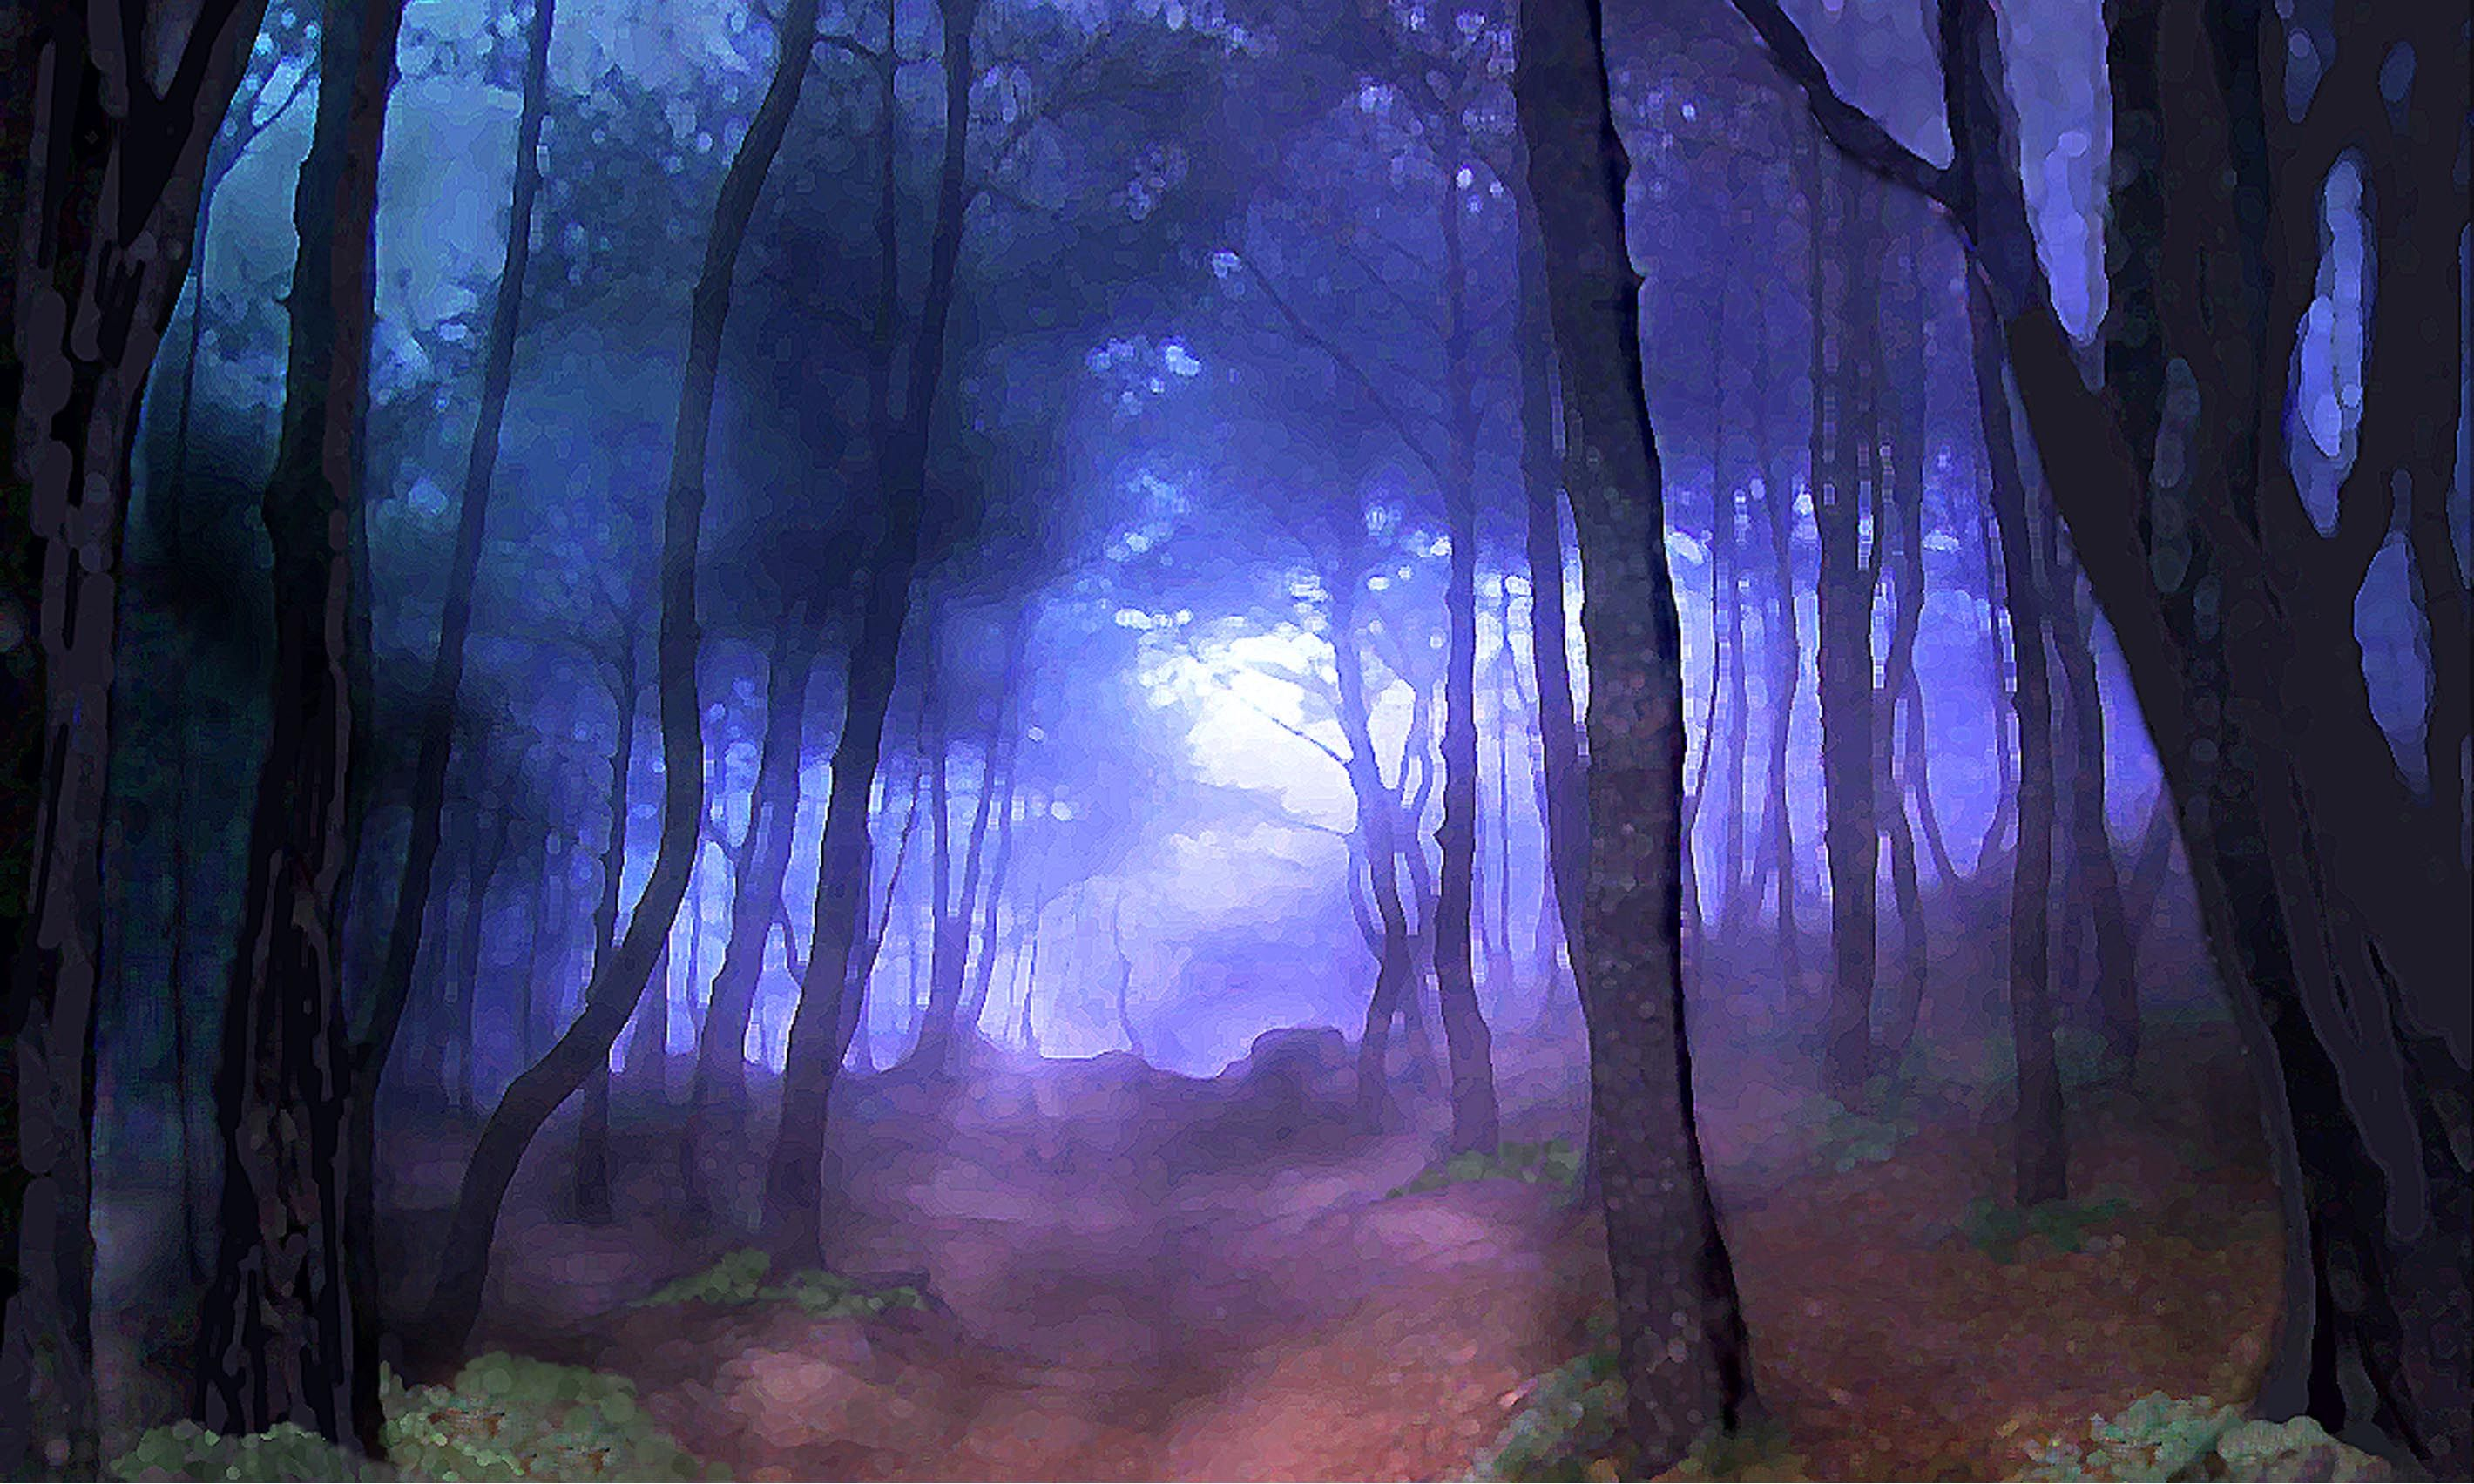 Forest Digital Painting Google Search Scene Design Digital Painting Painting